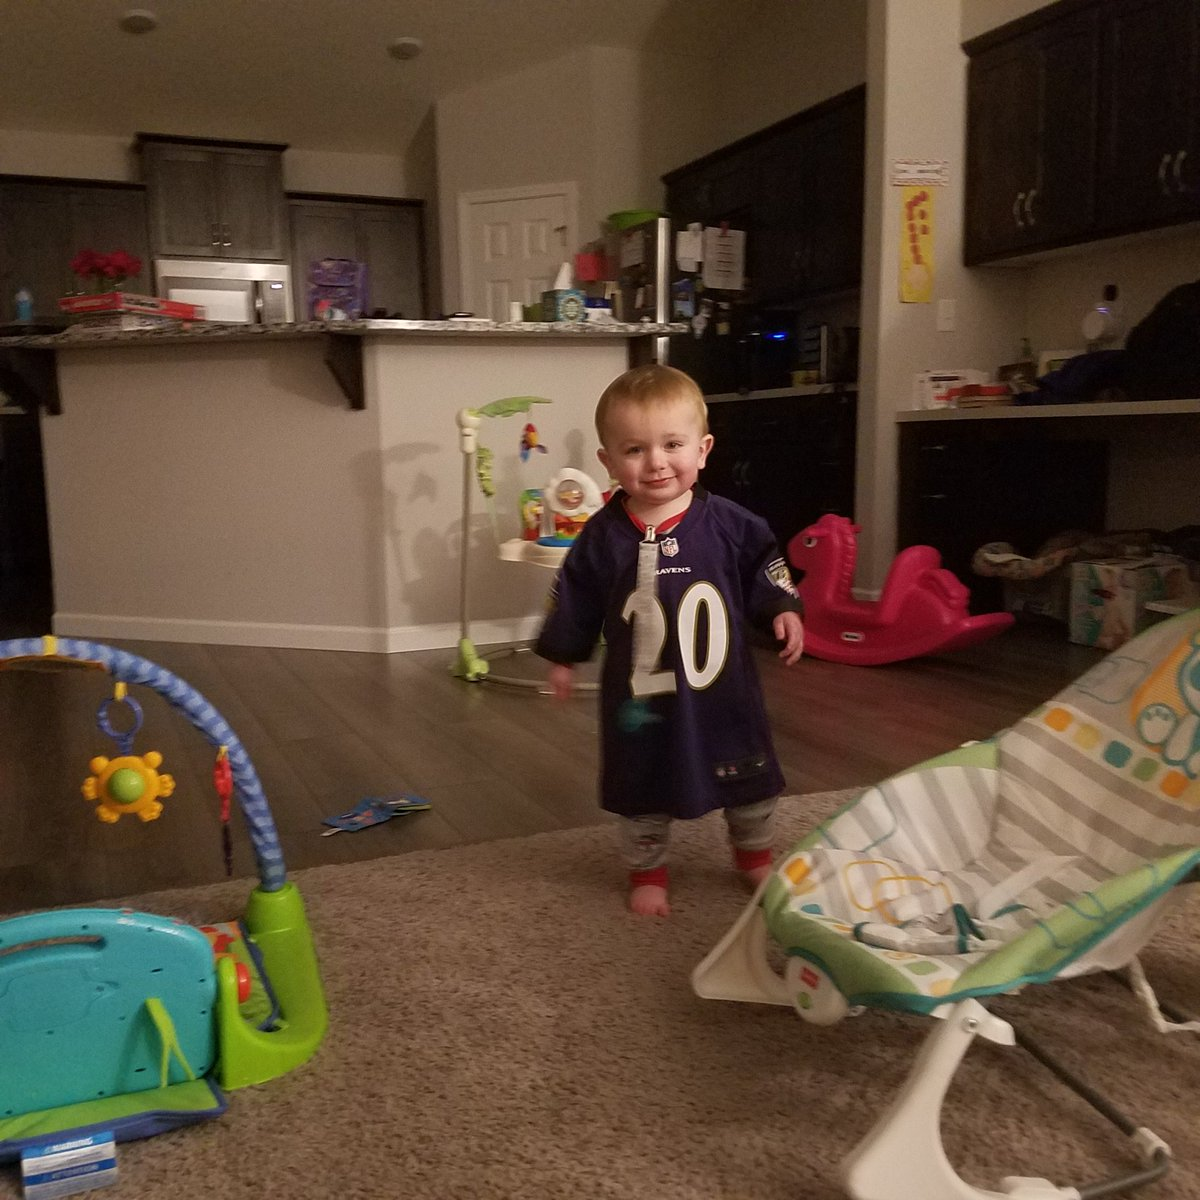 Congrats the the GOAT @EReed20. Teach them young to respect arms honor the greats. Camden says congrats. #HOF2019 https://t.co/j50sCNEnEA